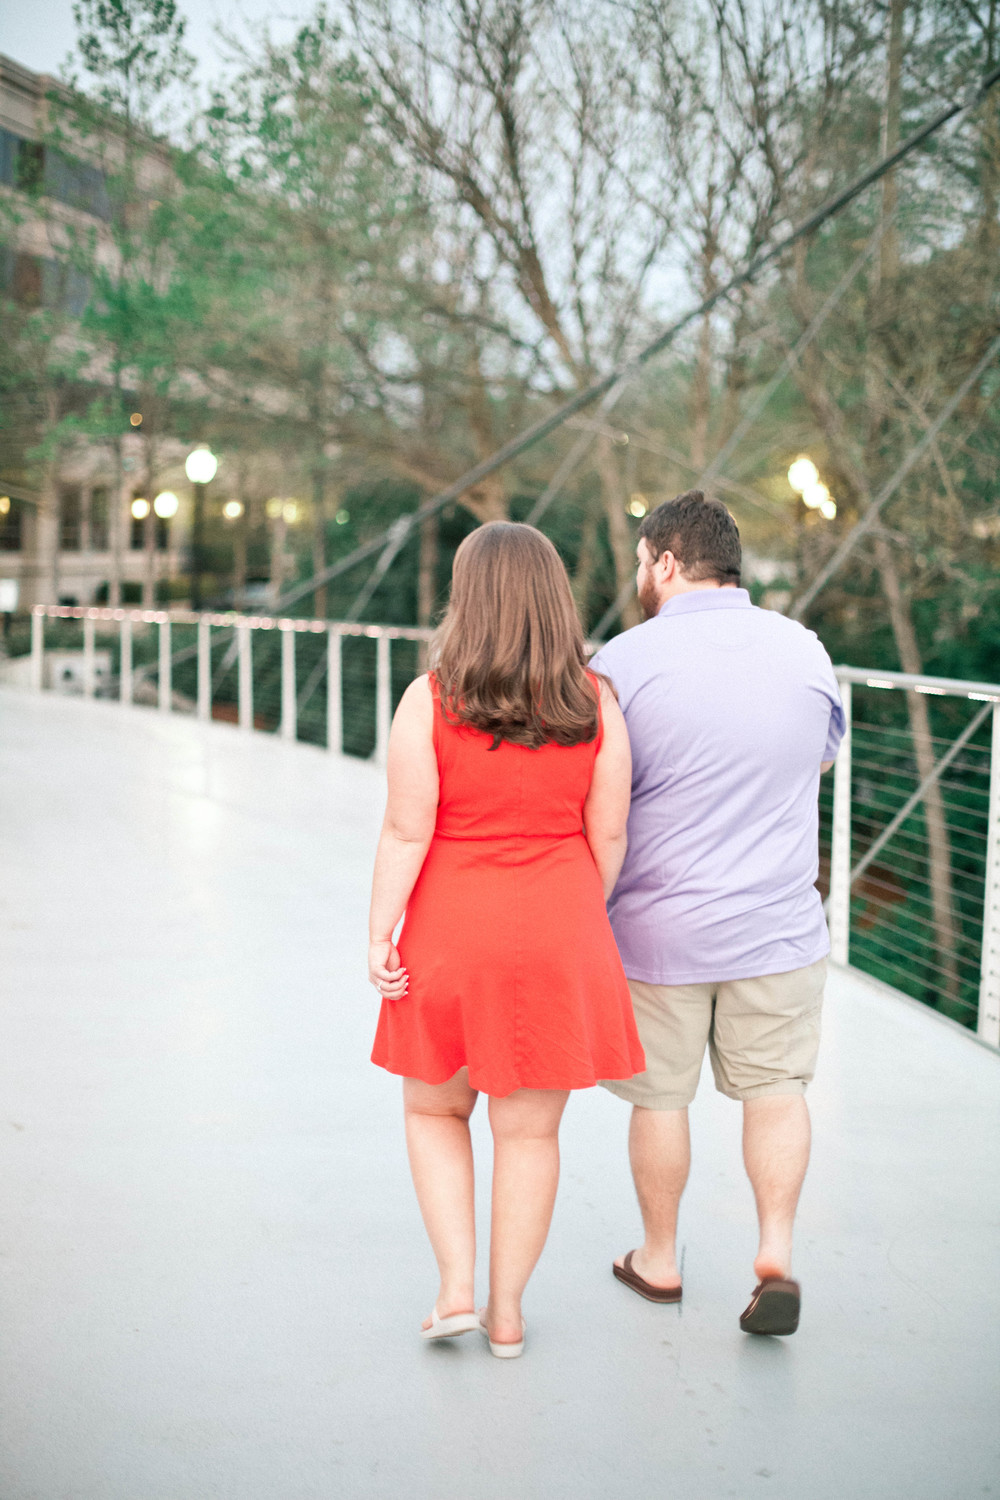 zach_gabbie_engagement_poured_out_photography-74.jpg